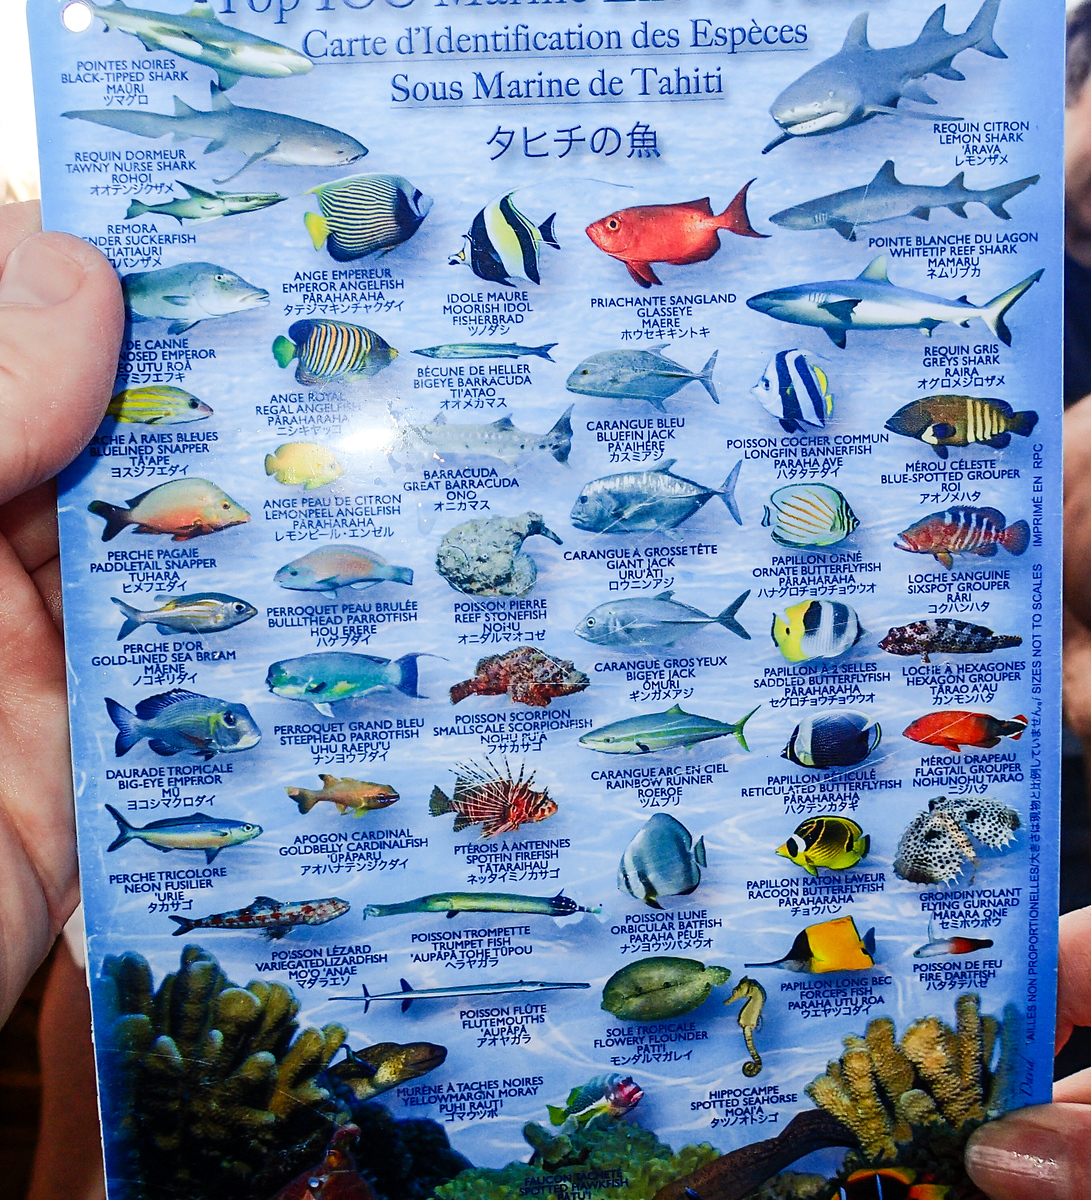 A chart helps identify what we've seen on a Rangiroa snorkeling excursion with Silversea.